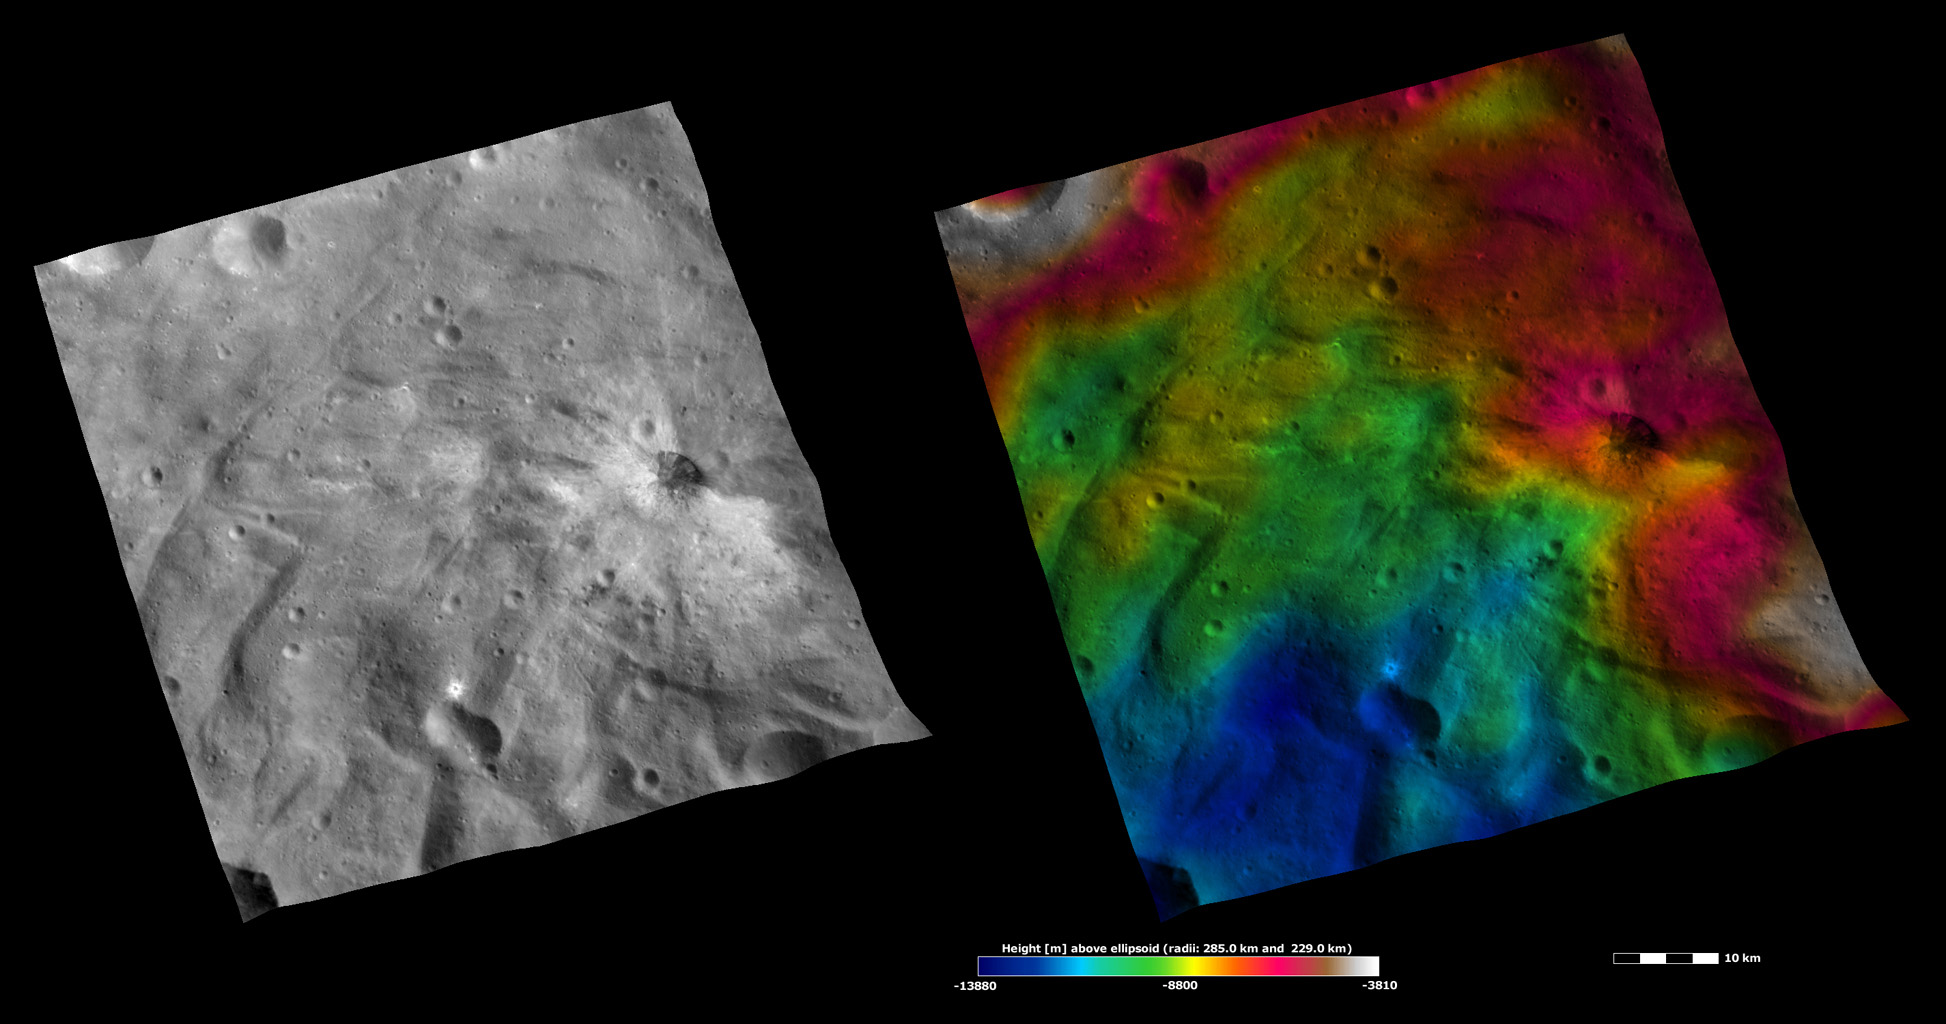 Apparent Brightness and Topography Images of Justina Crater